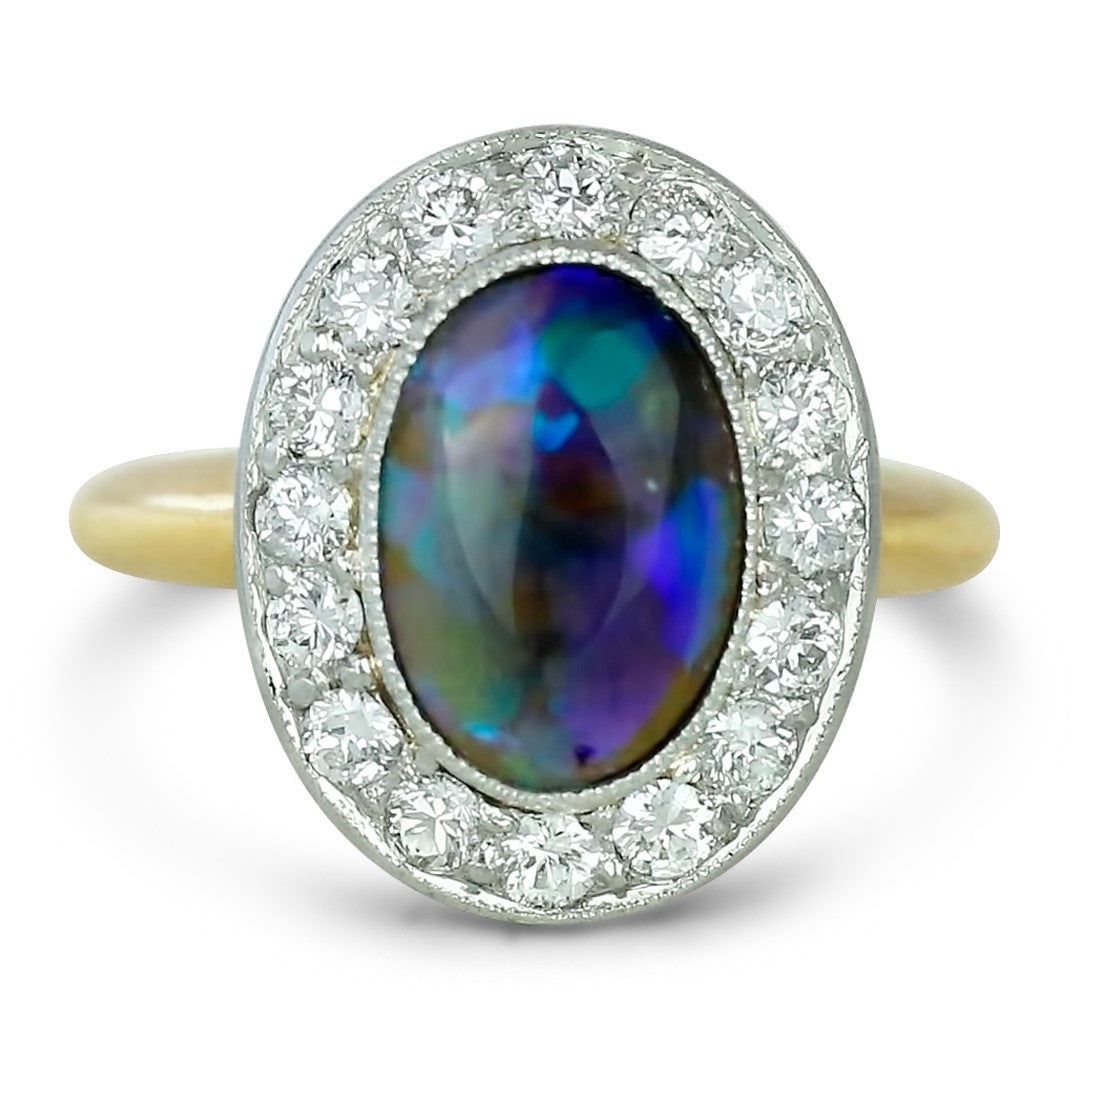 14k yellow and white gold cabochon cut oval opal estate ring with a bezel set diamond halo and milgrain details